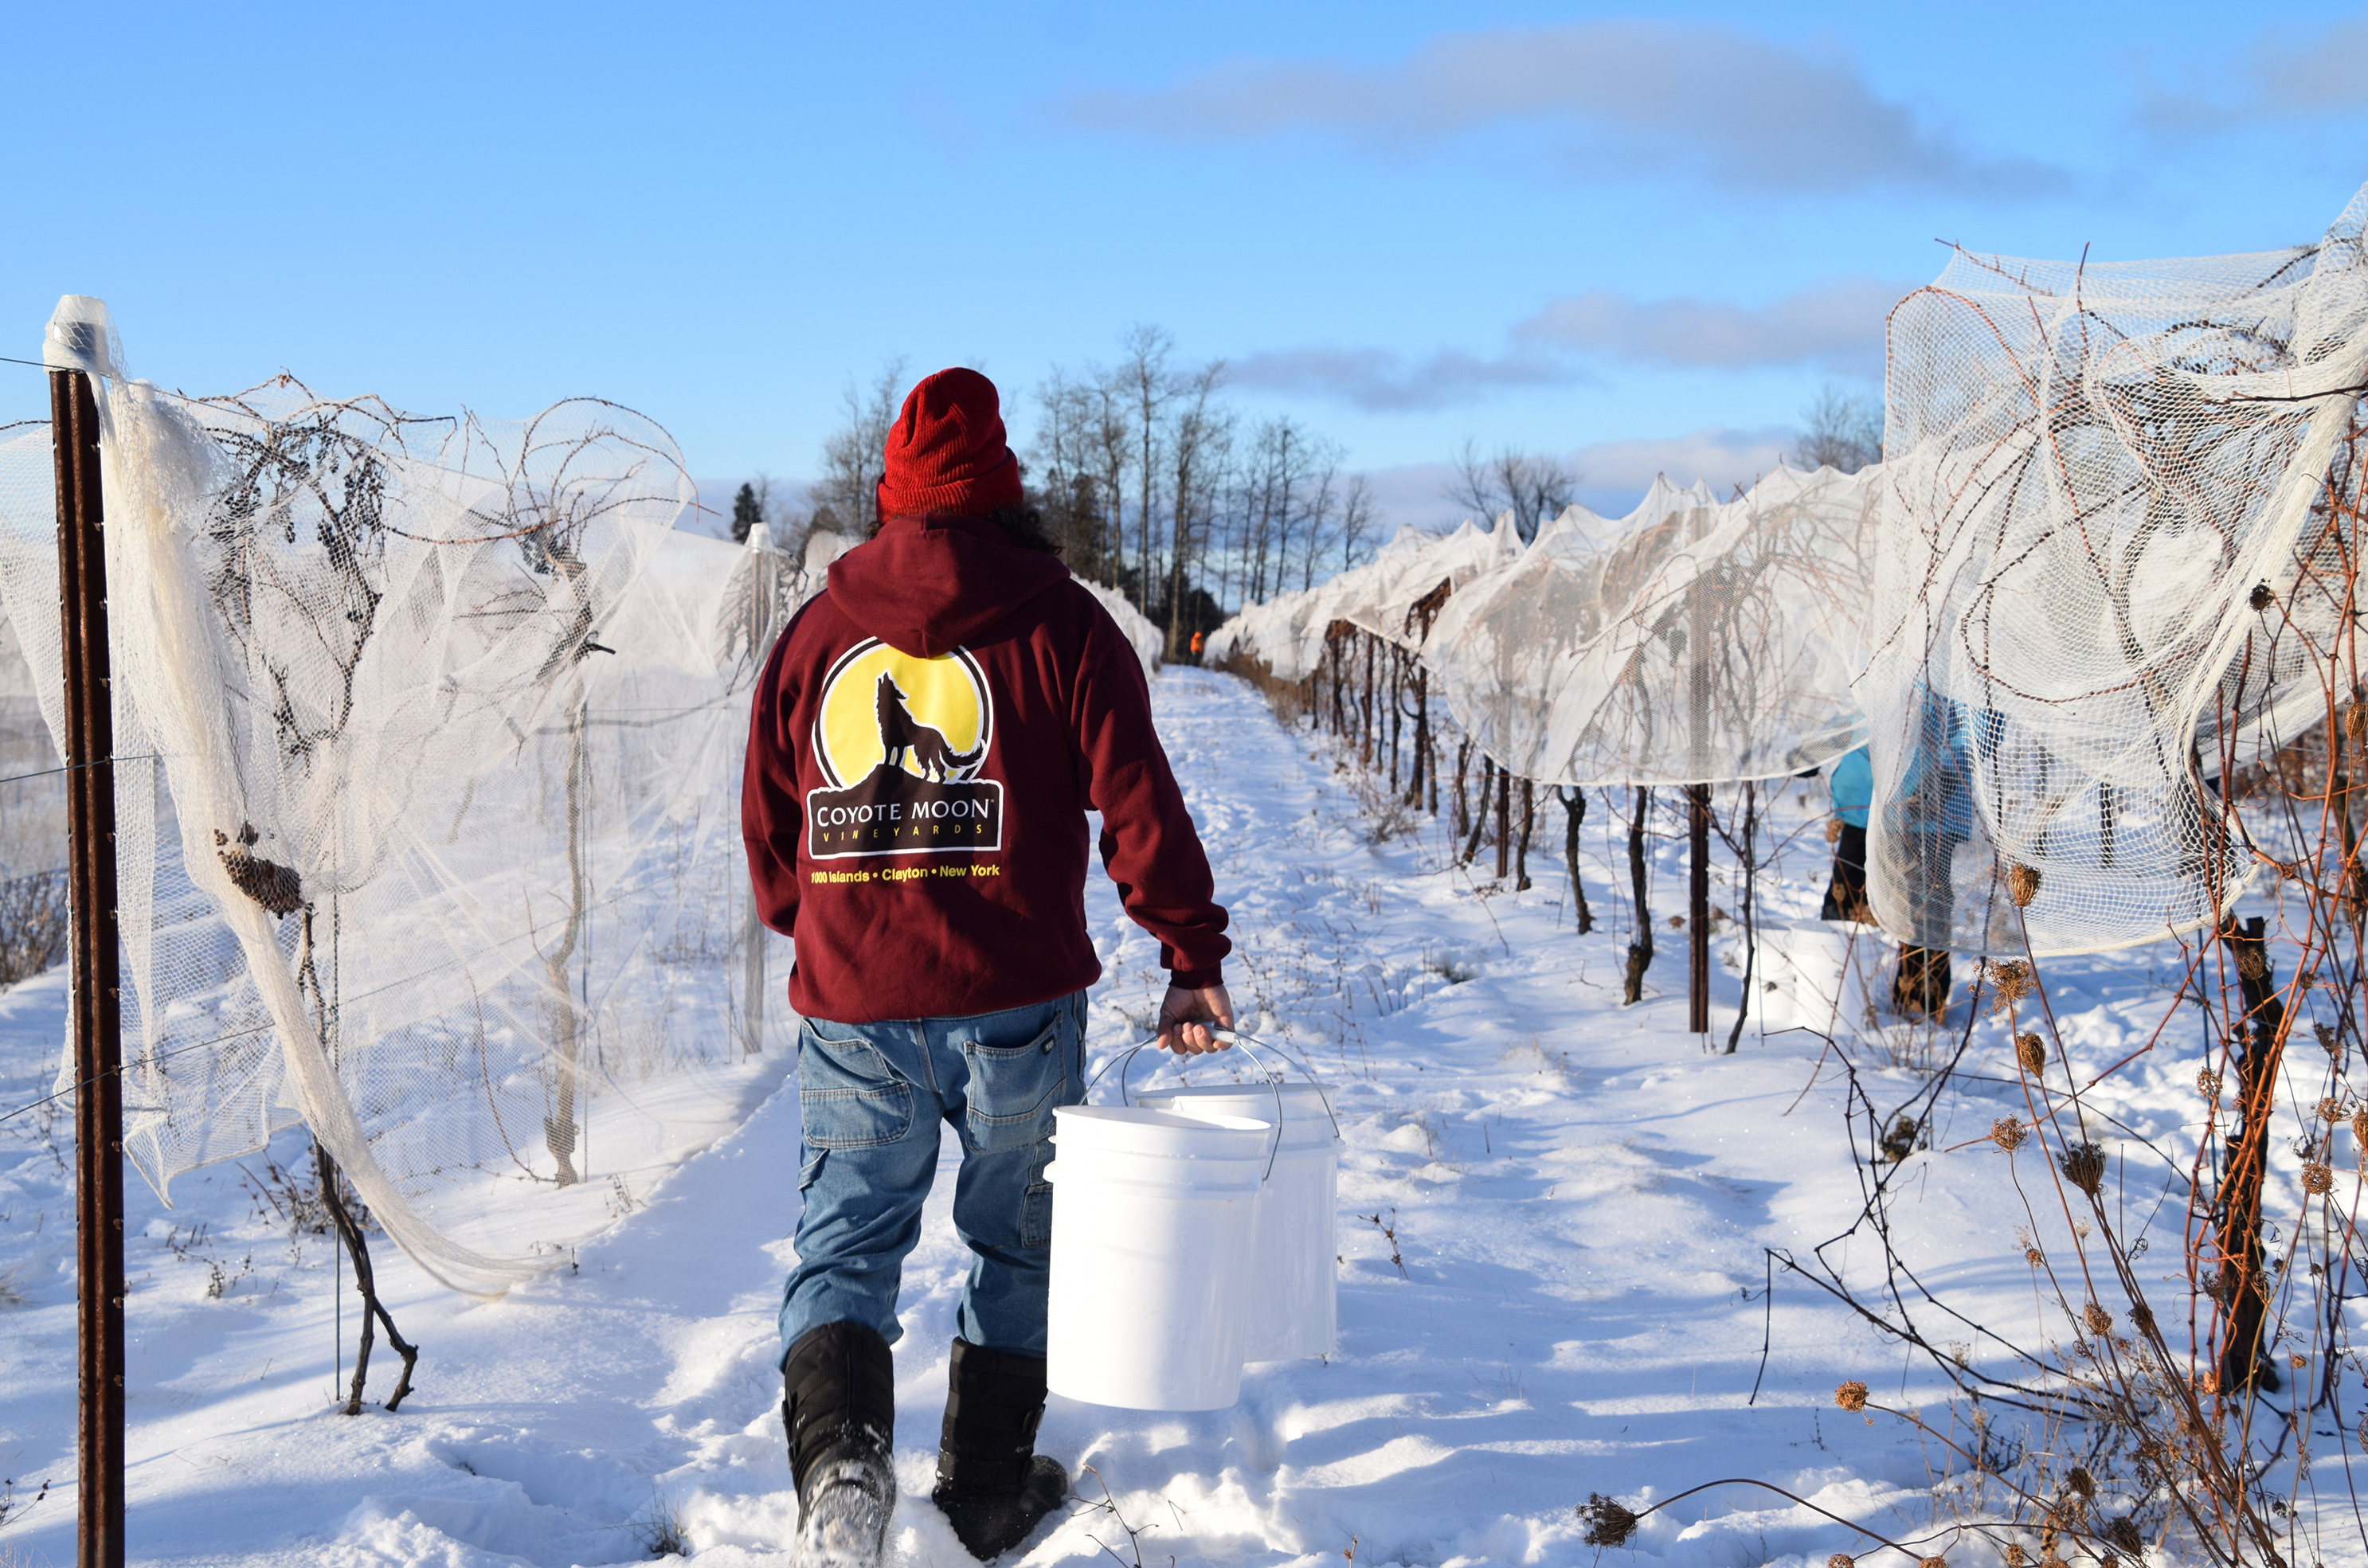 Robert Heyman, a Coyote Moon employee, returns to the vines to fill his bucket with frozen grapes. The vineyard grows two cold climate varietals for ice wine: frontenac (red) and frontenac gris (white).